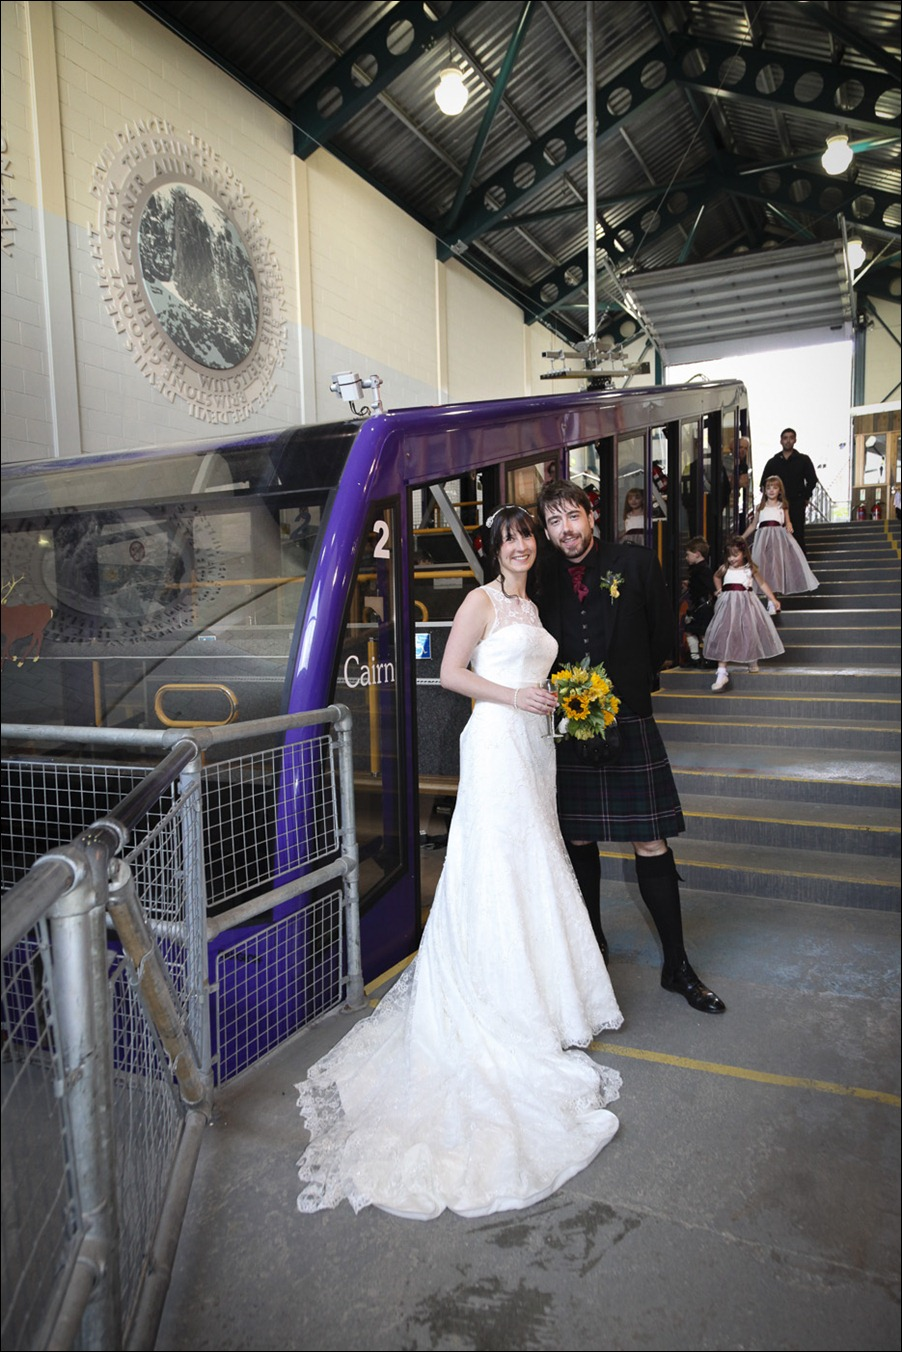 Wedding photograph at Cairngorm Mountain